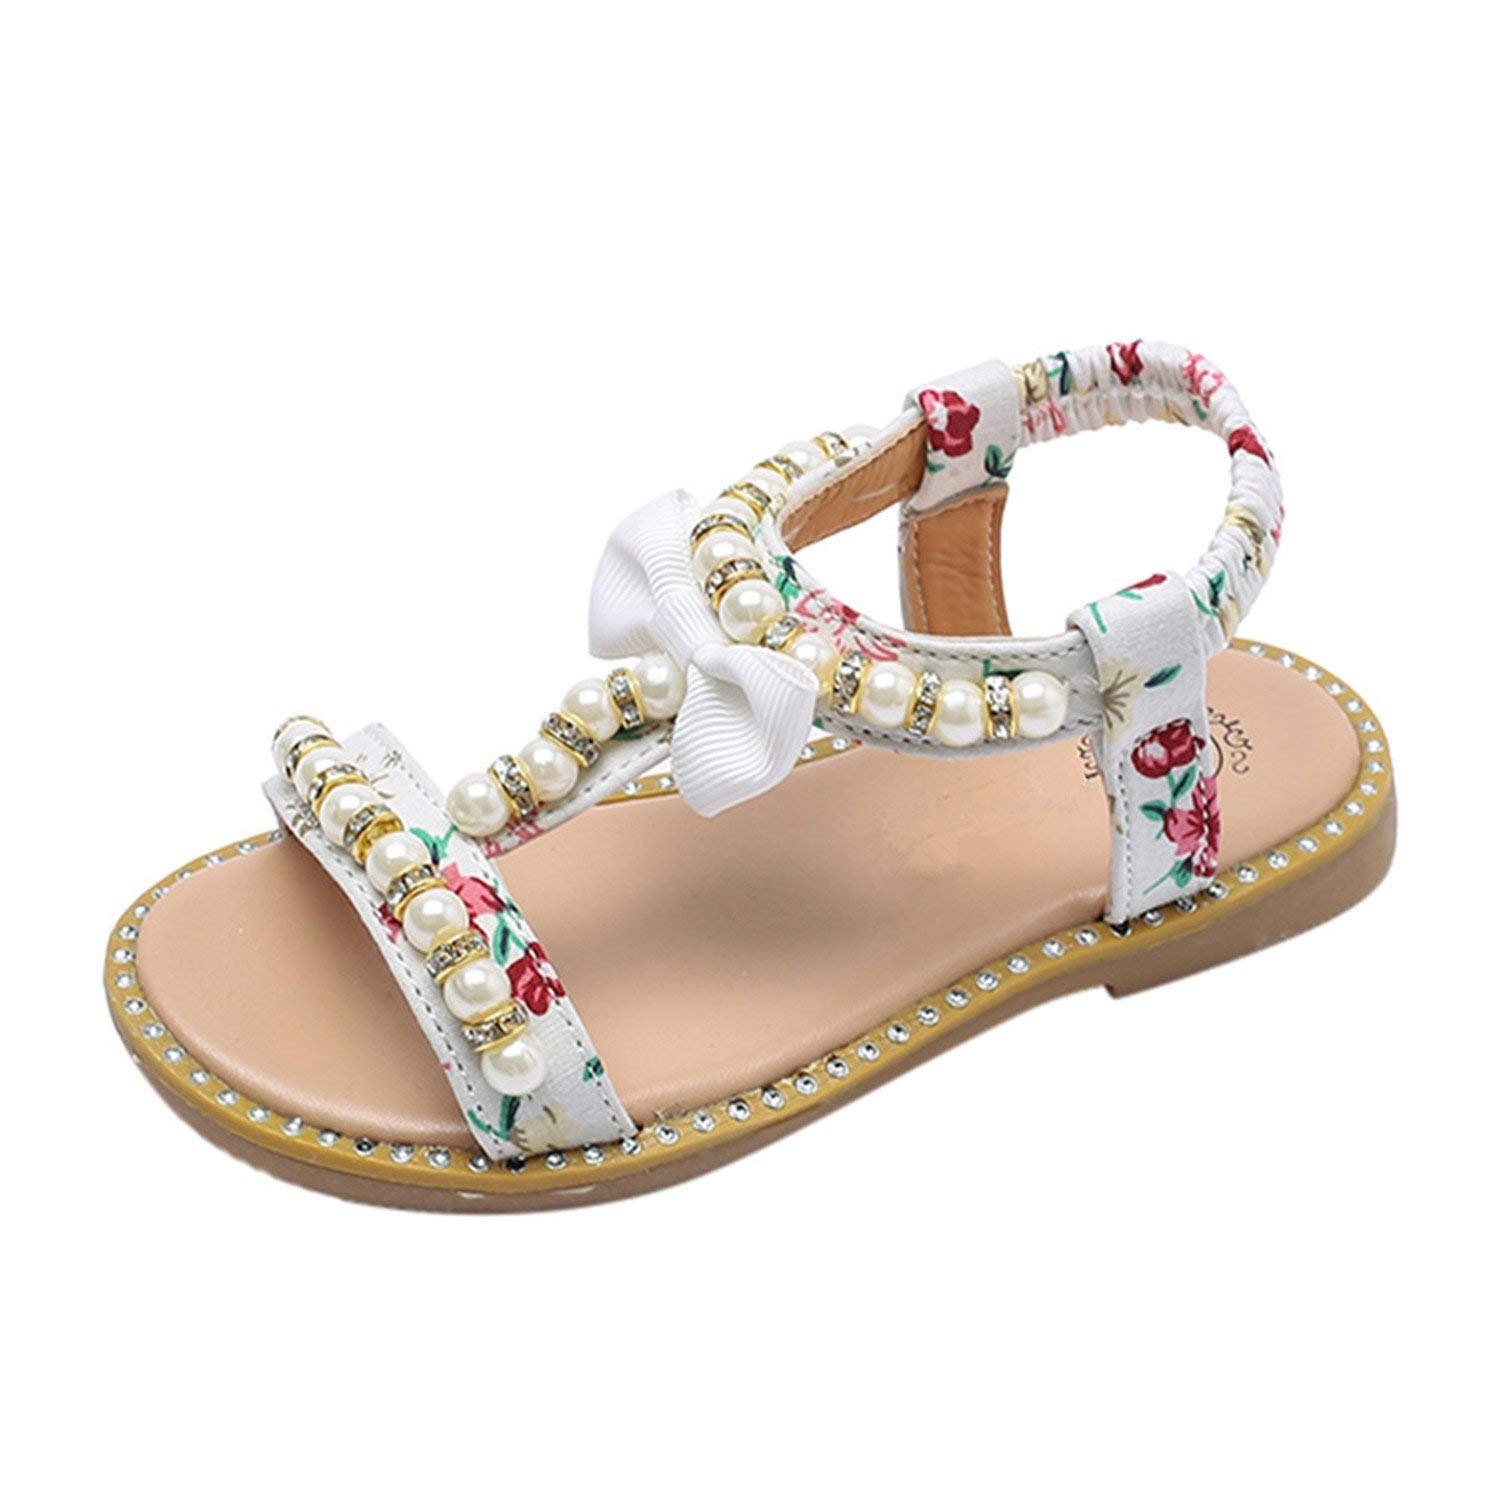 Kids Girls Sandals Bow Pearl Rhinestone Sandals Baby Girls Shoes Crystal Roman Beach Sandals Princess Shoes